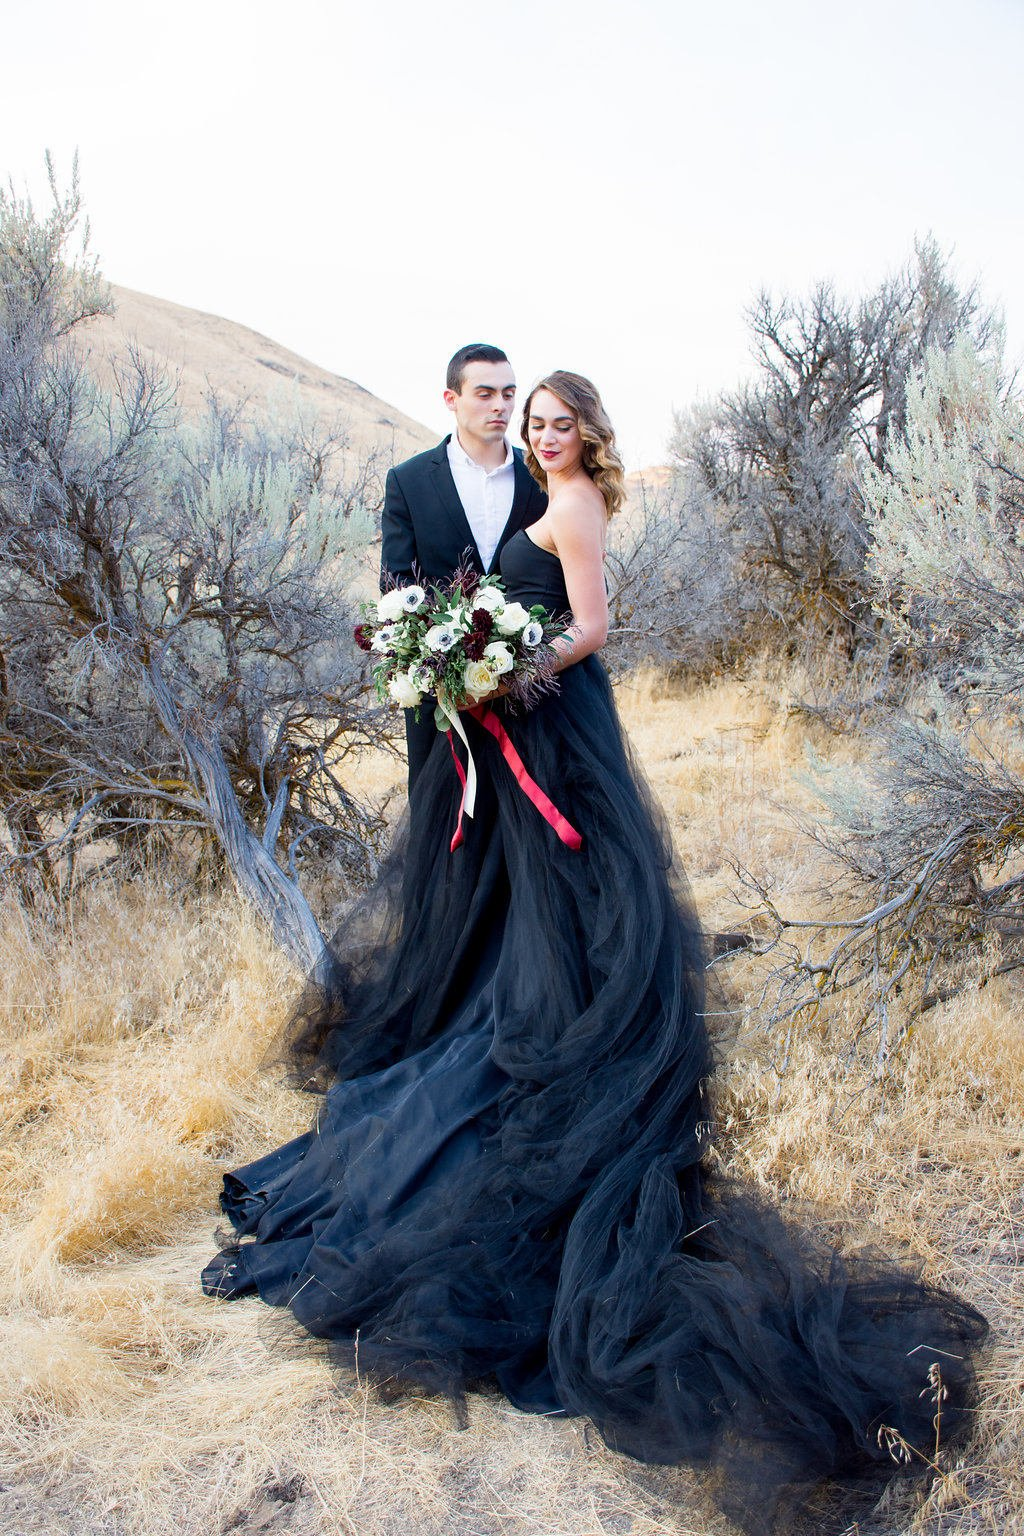 Black Wedding Dress, Tulle Skirt, Gothic, Goth, Colored Wedding Dress, Alternative TWILIGHT, Black,.jpg